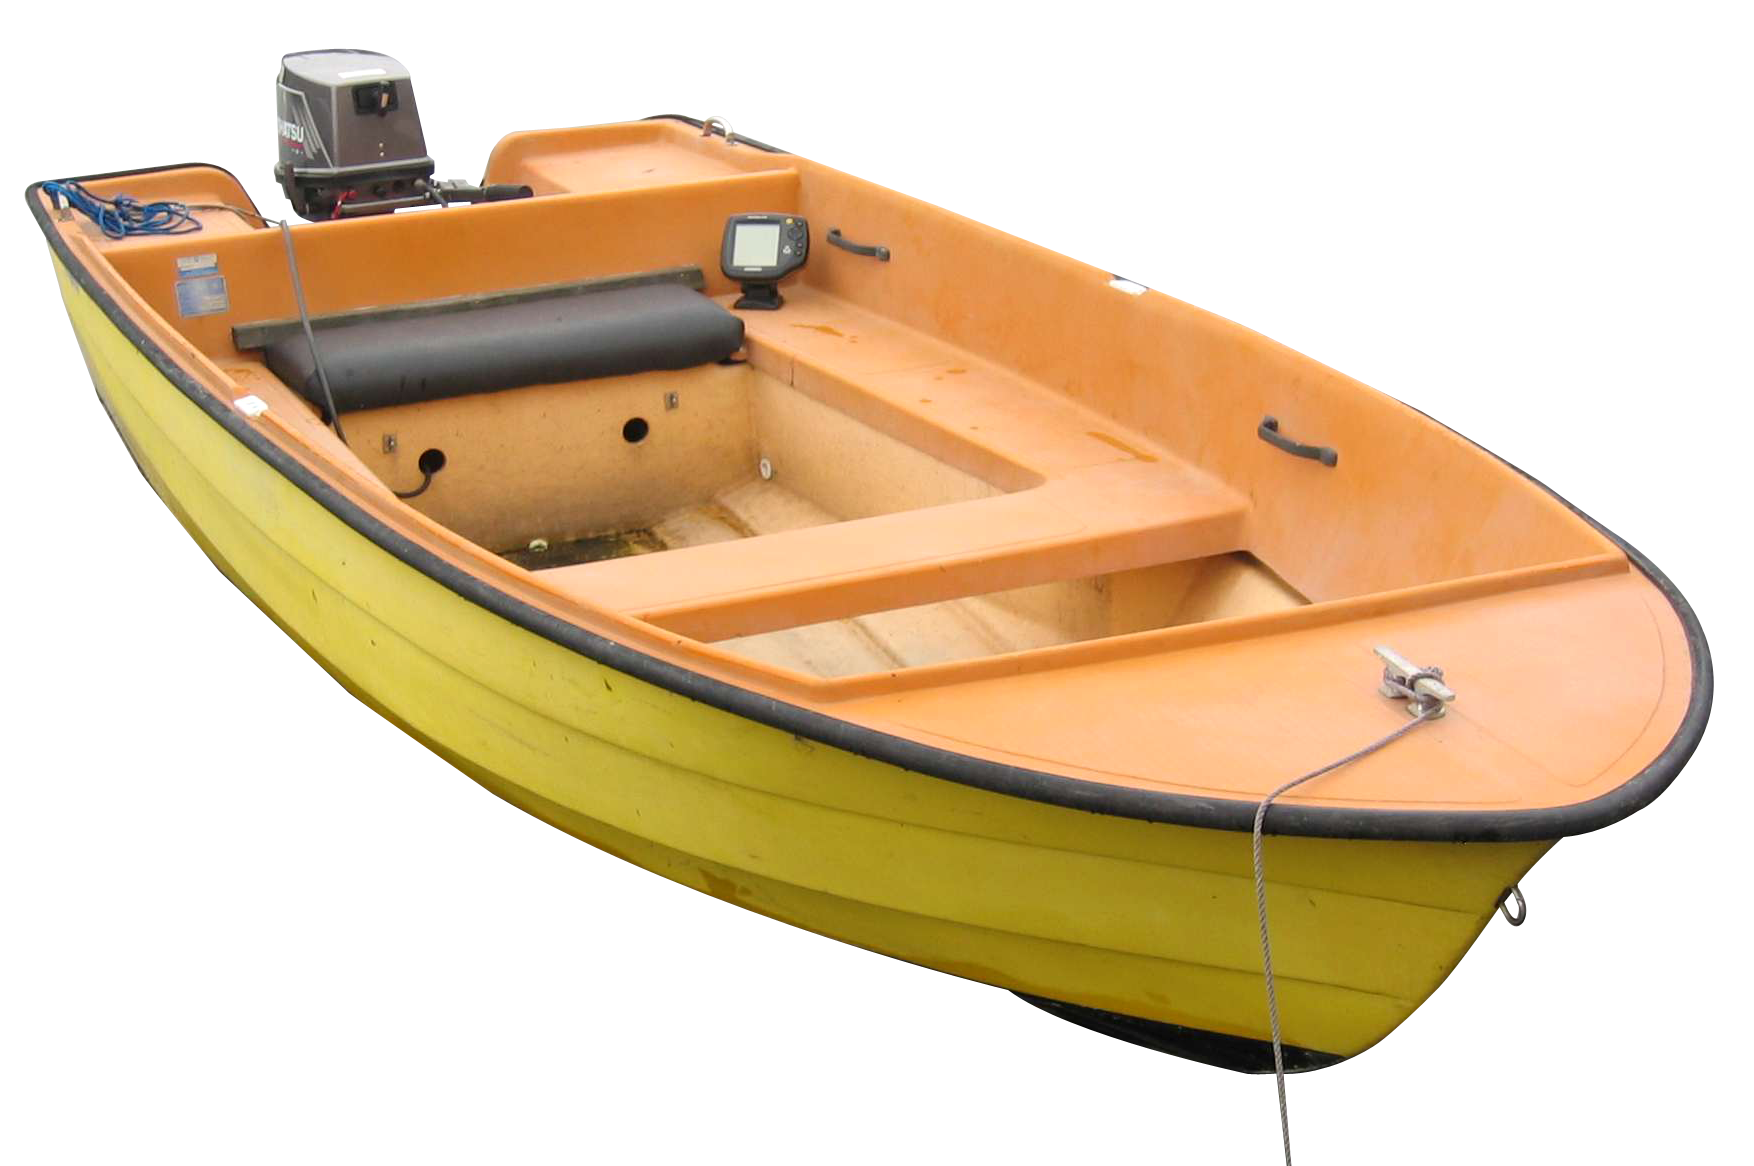 Png image purepng free. Clipart boat clear background